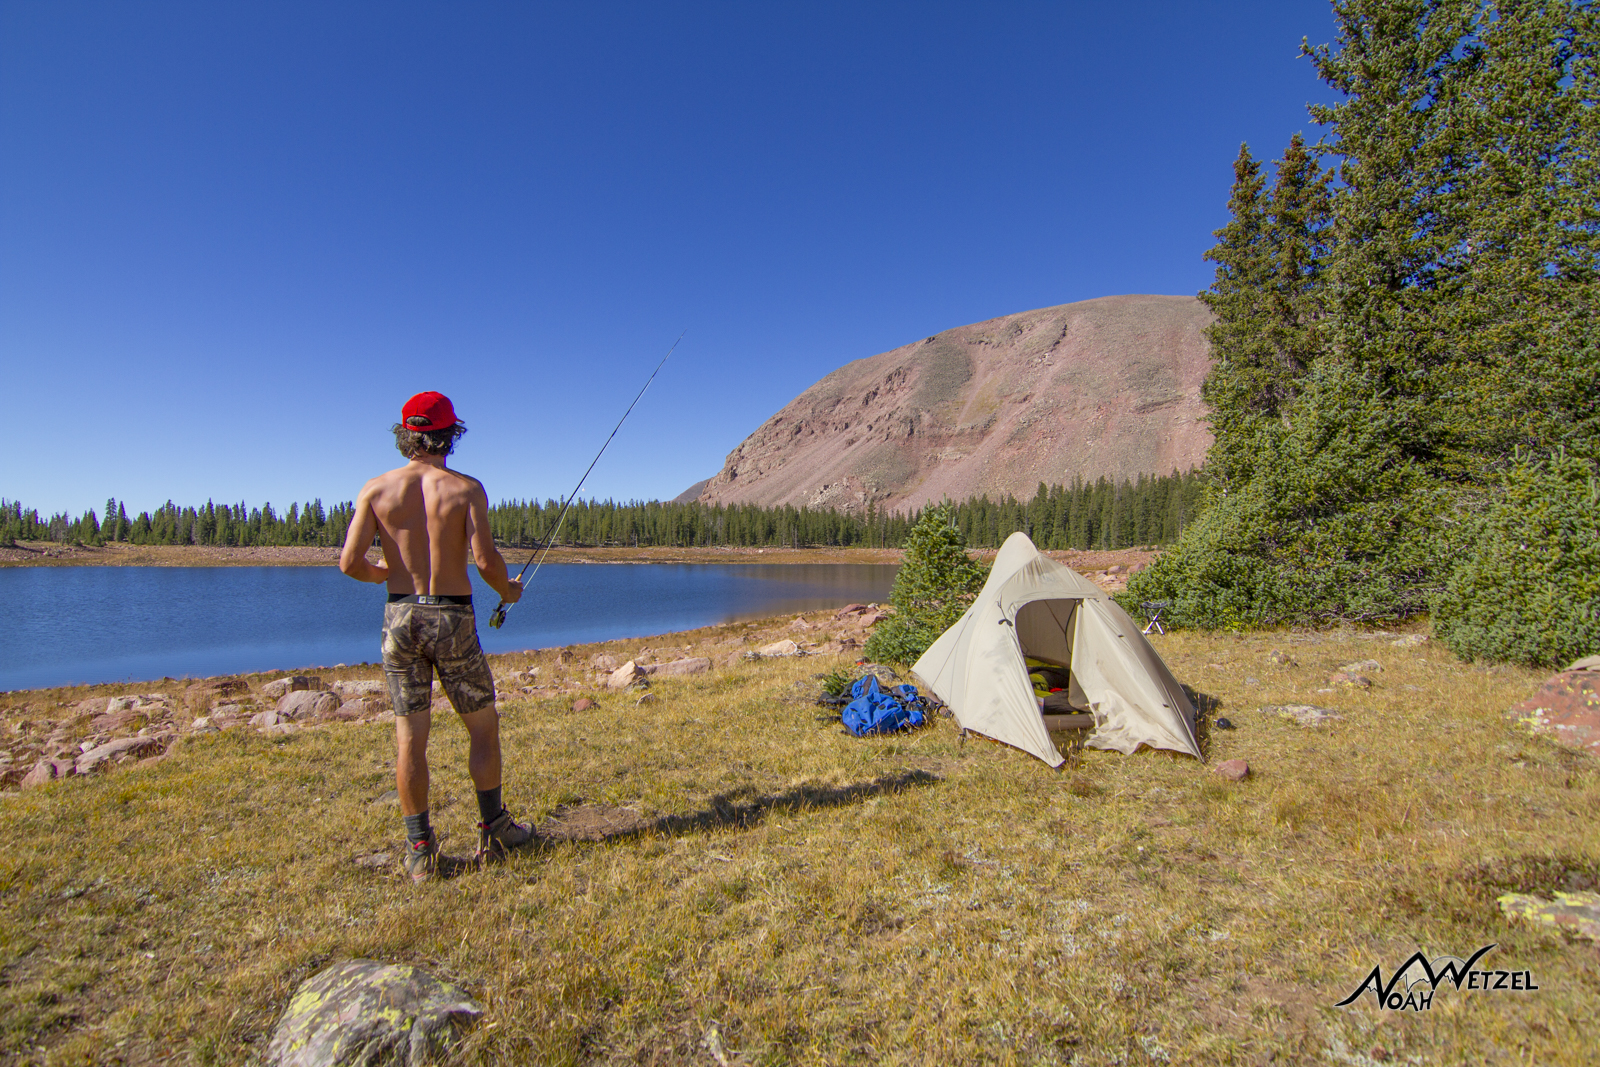 Pretty much daily life...coffee, fish, read, sleep, read, fish, sleep...repeat @ East Timothy Lake. High Uintas Wilderness. Utah